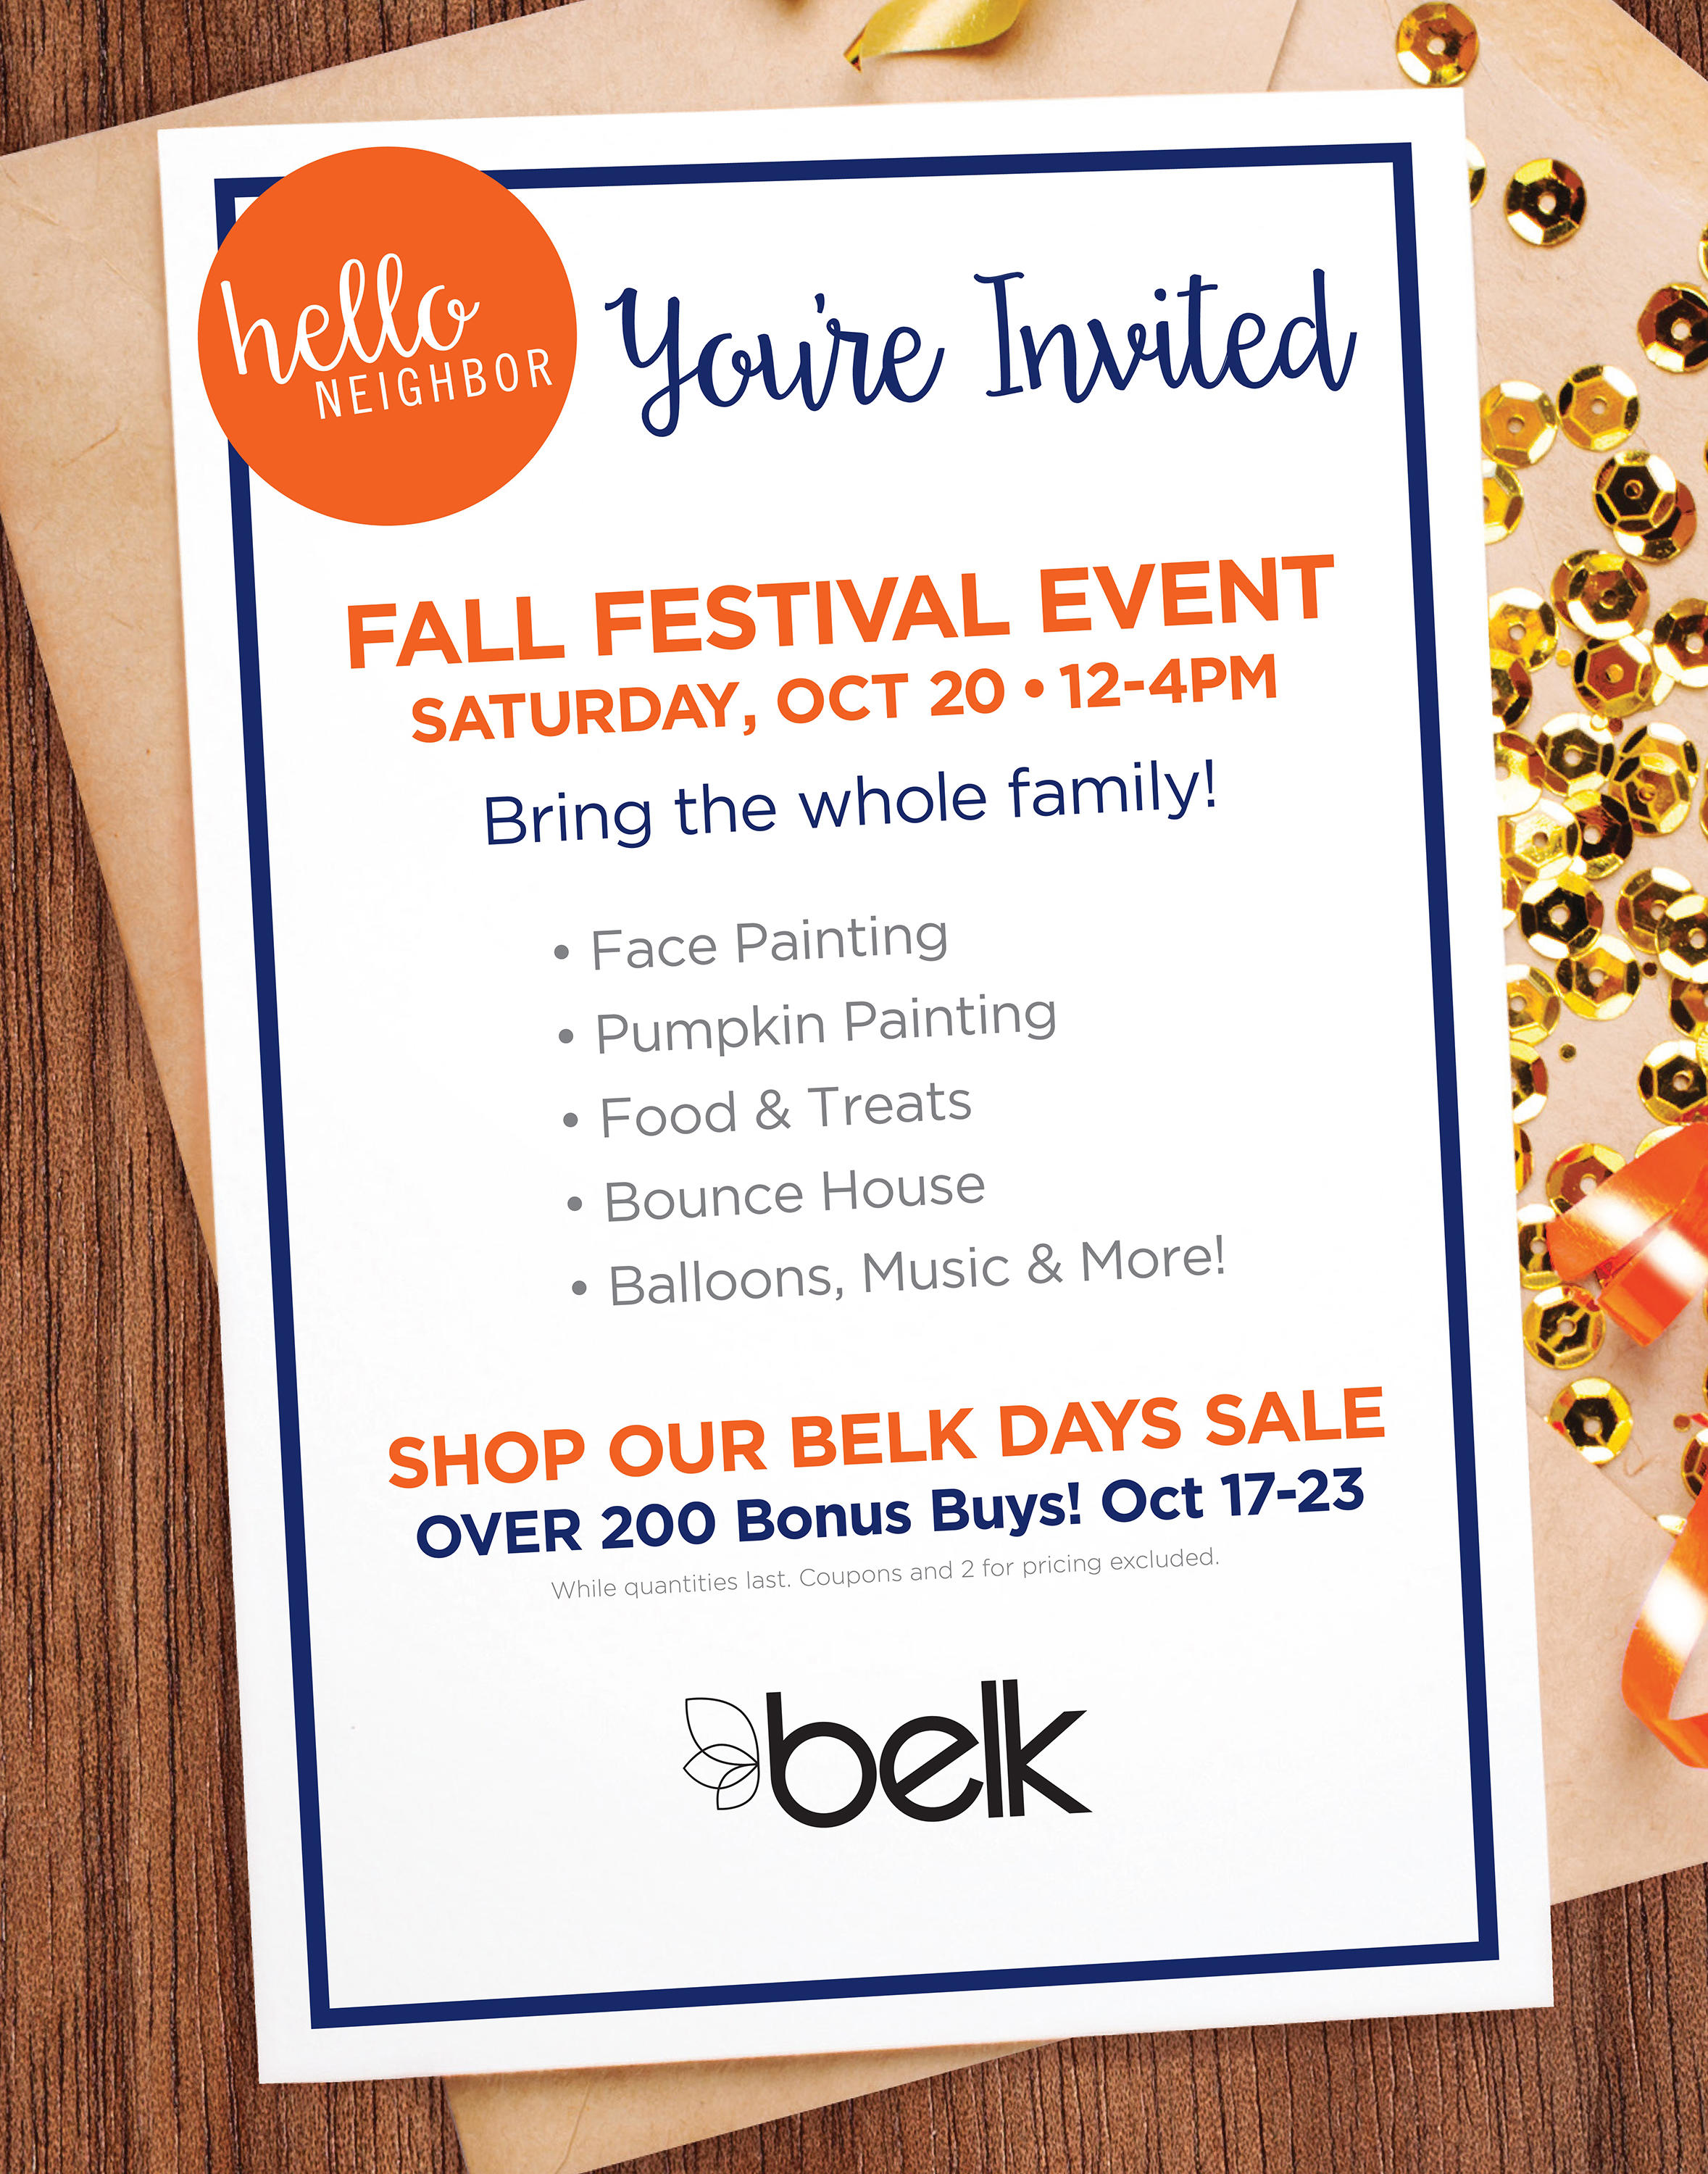 Free Fall Family Festival at Belk, Valley Mall in Hagerstown